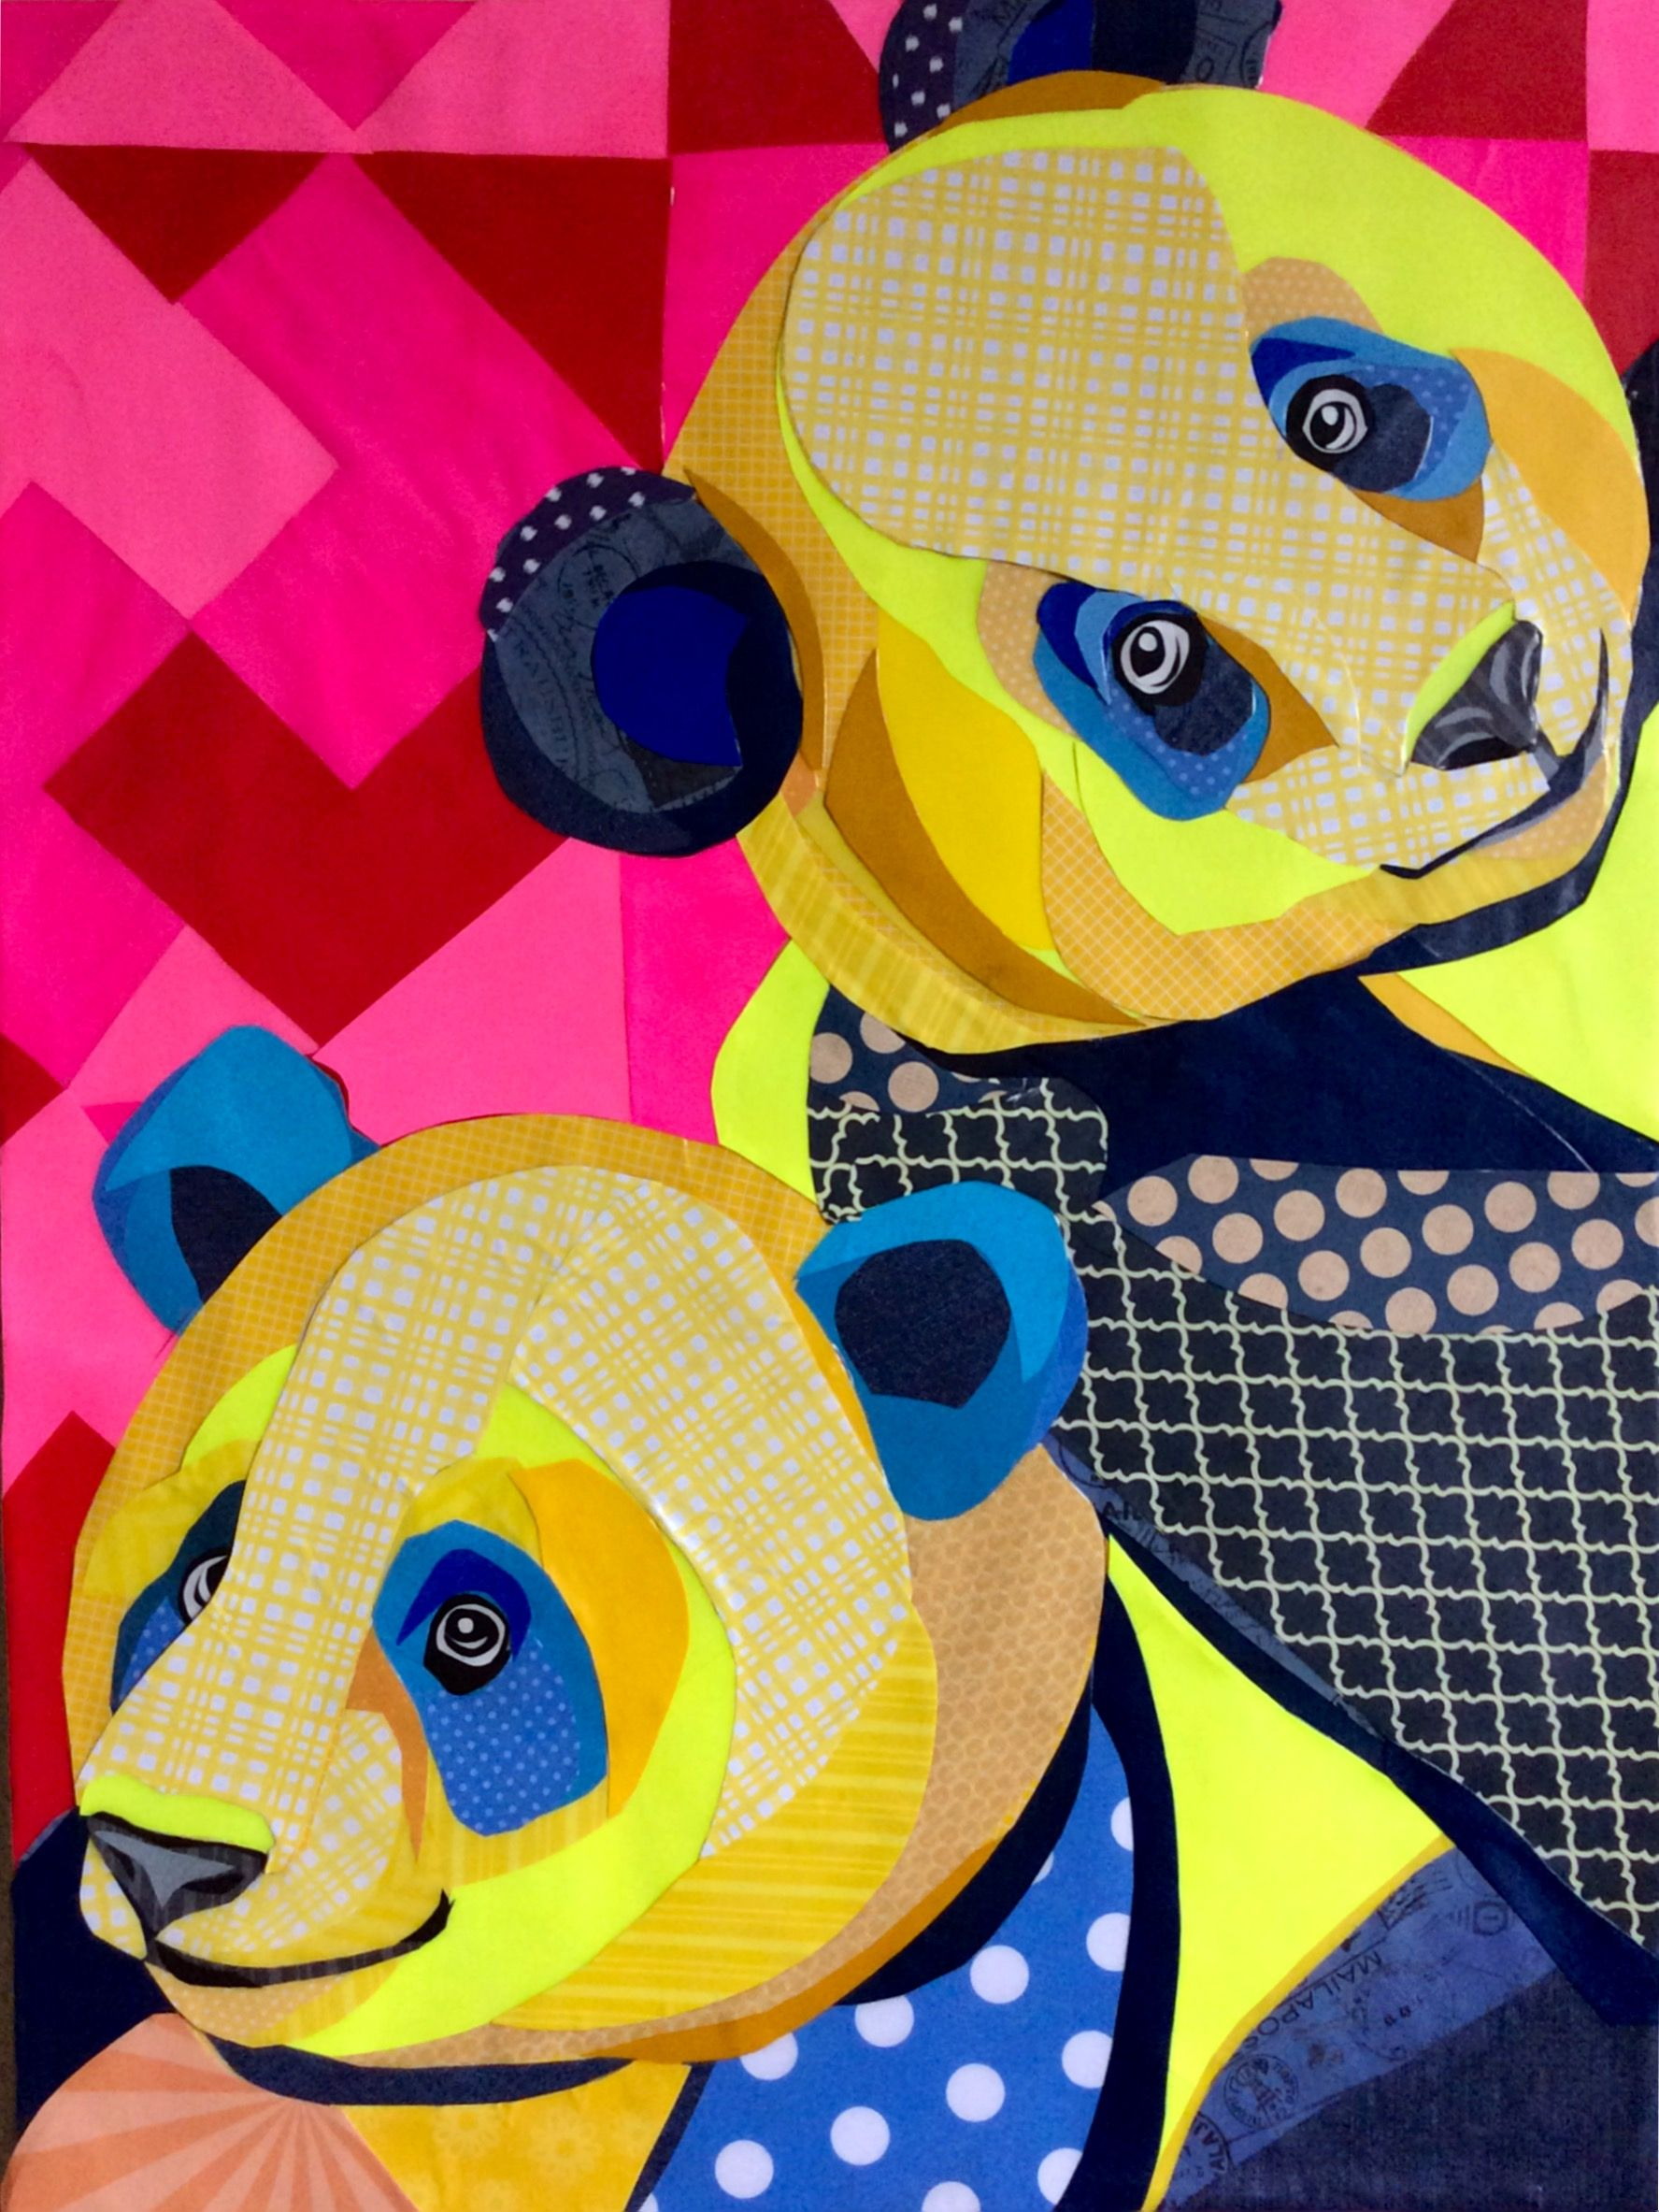 Scrapbook paper collage - Cut Paper Collage Perky Pandas 18 X24 By Laura Yager